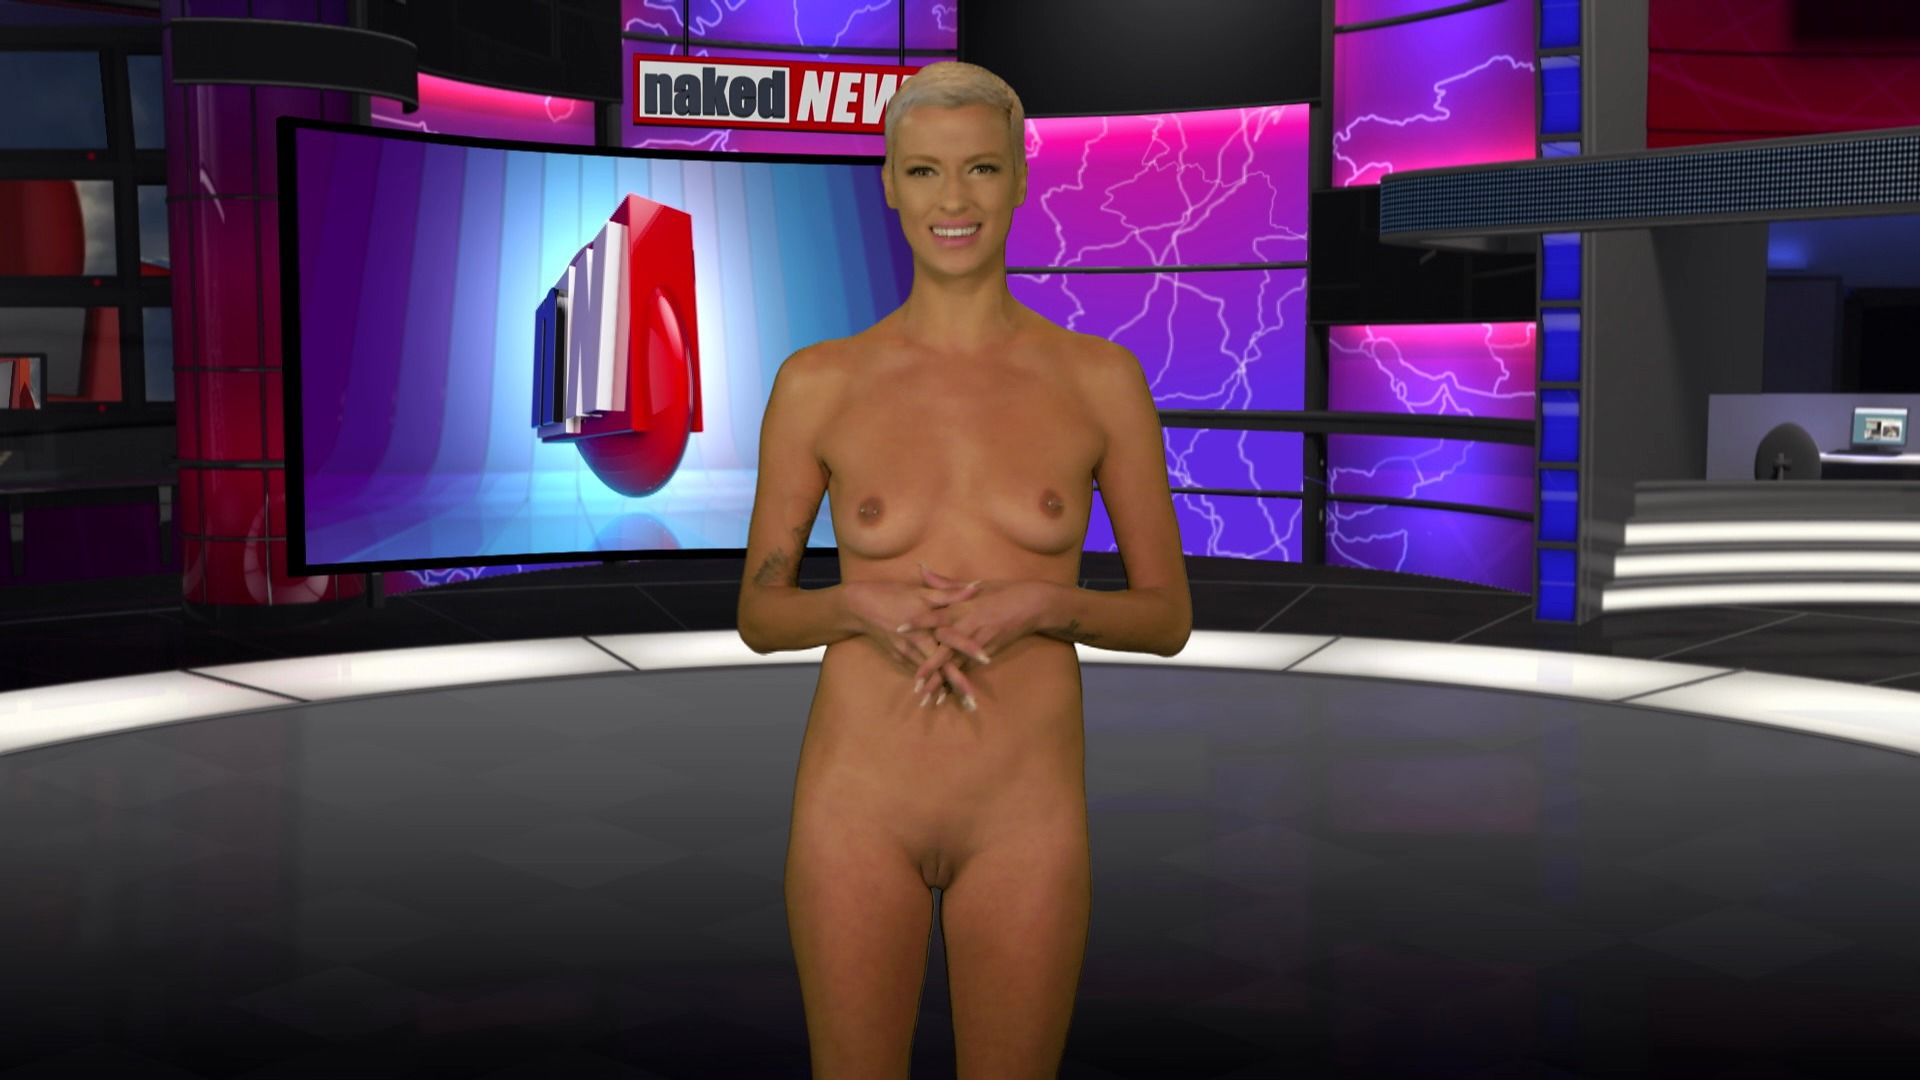 Nude news, cfnf, cmnf, the only one naked photo